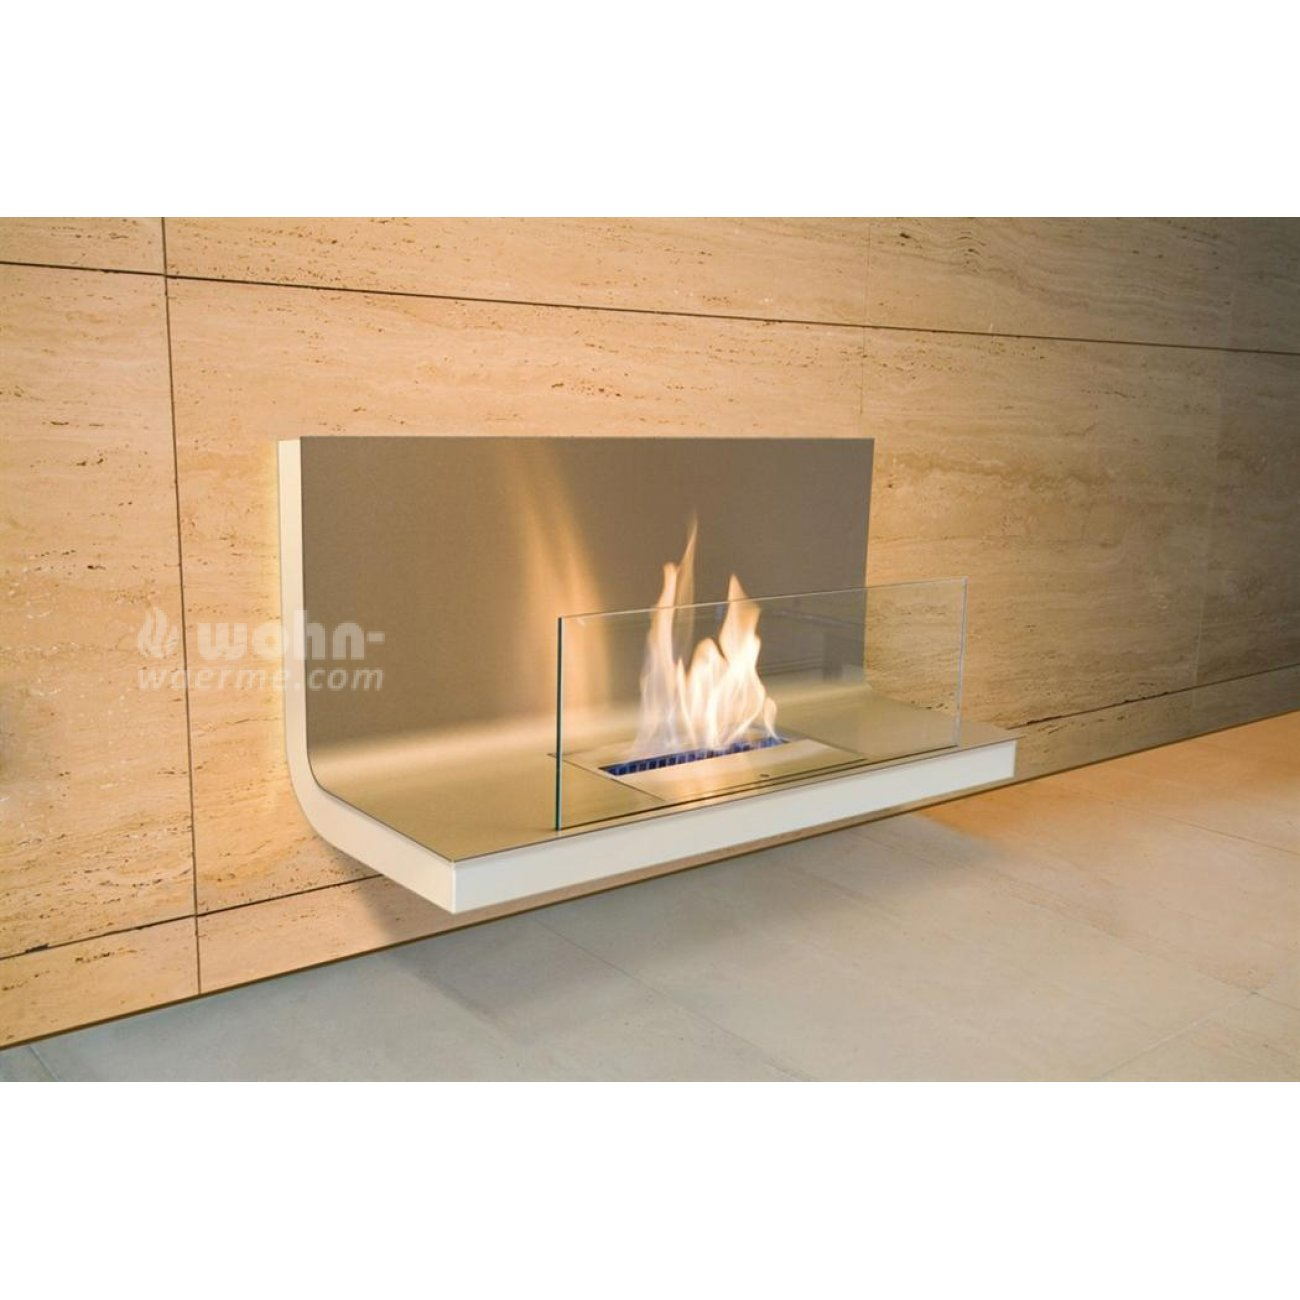 radius ethanol wandkamin wall flame. Black Bedroom Furniture Sets. Home Design Ideas